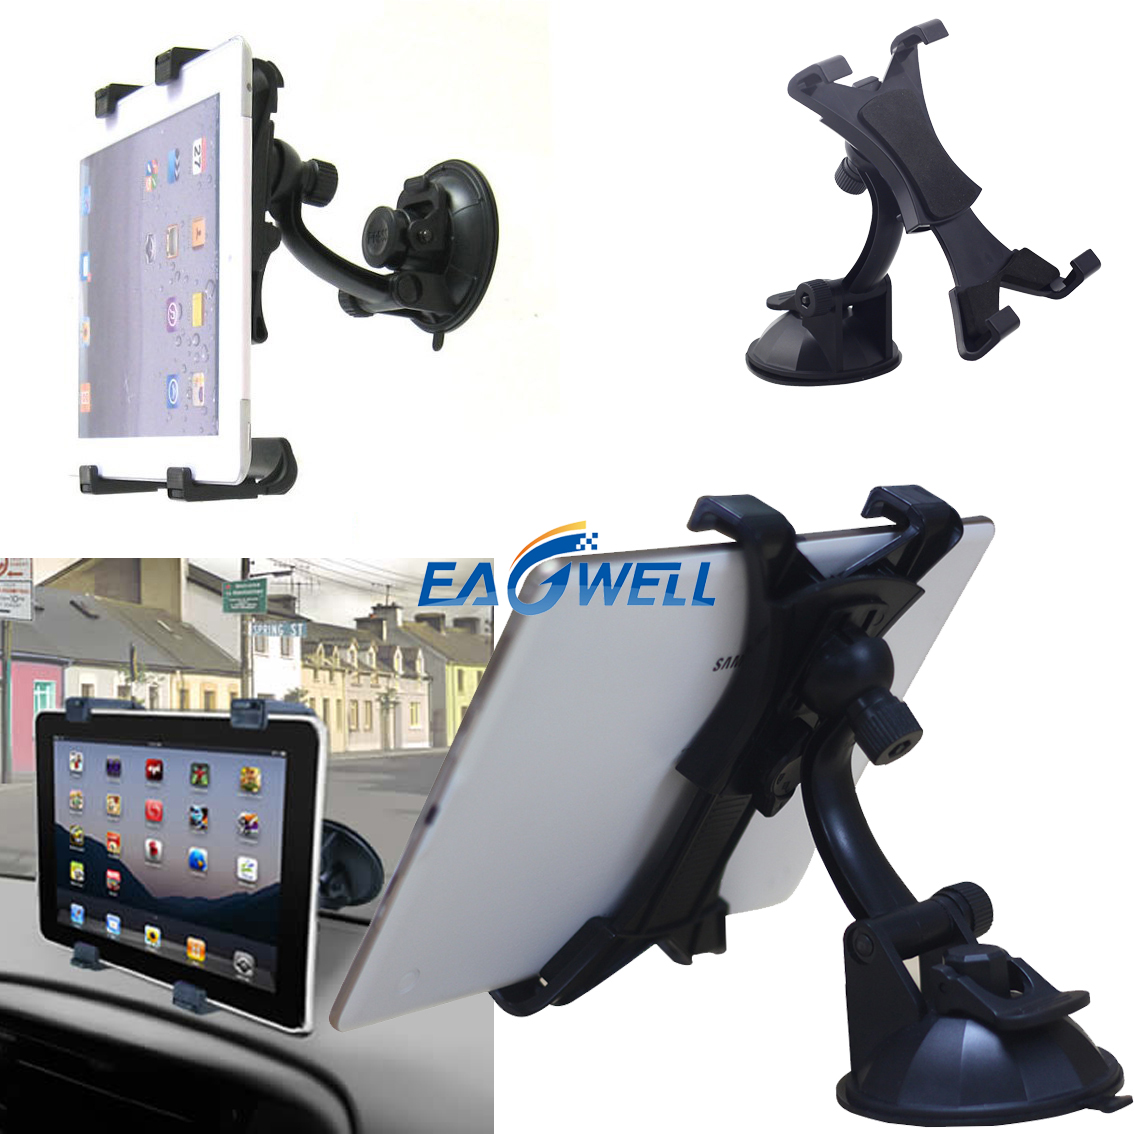 Details about 360° Car Suction Cup Mount Holder For RCA Voyager I,II,III  7 0 7